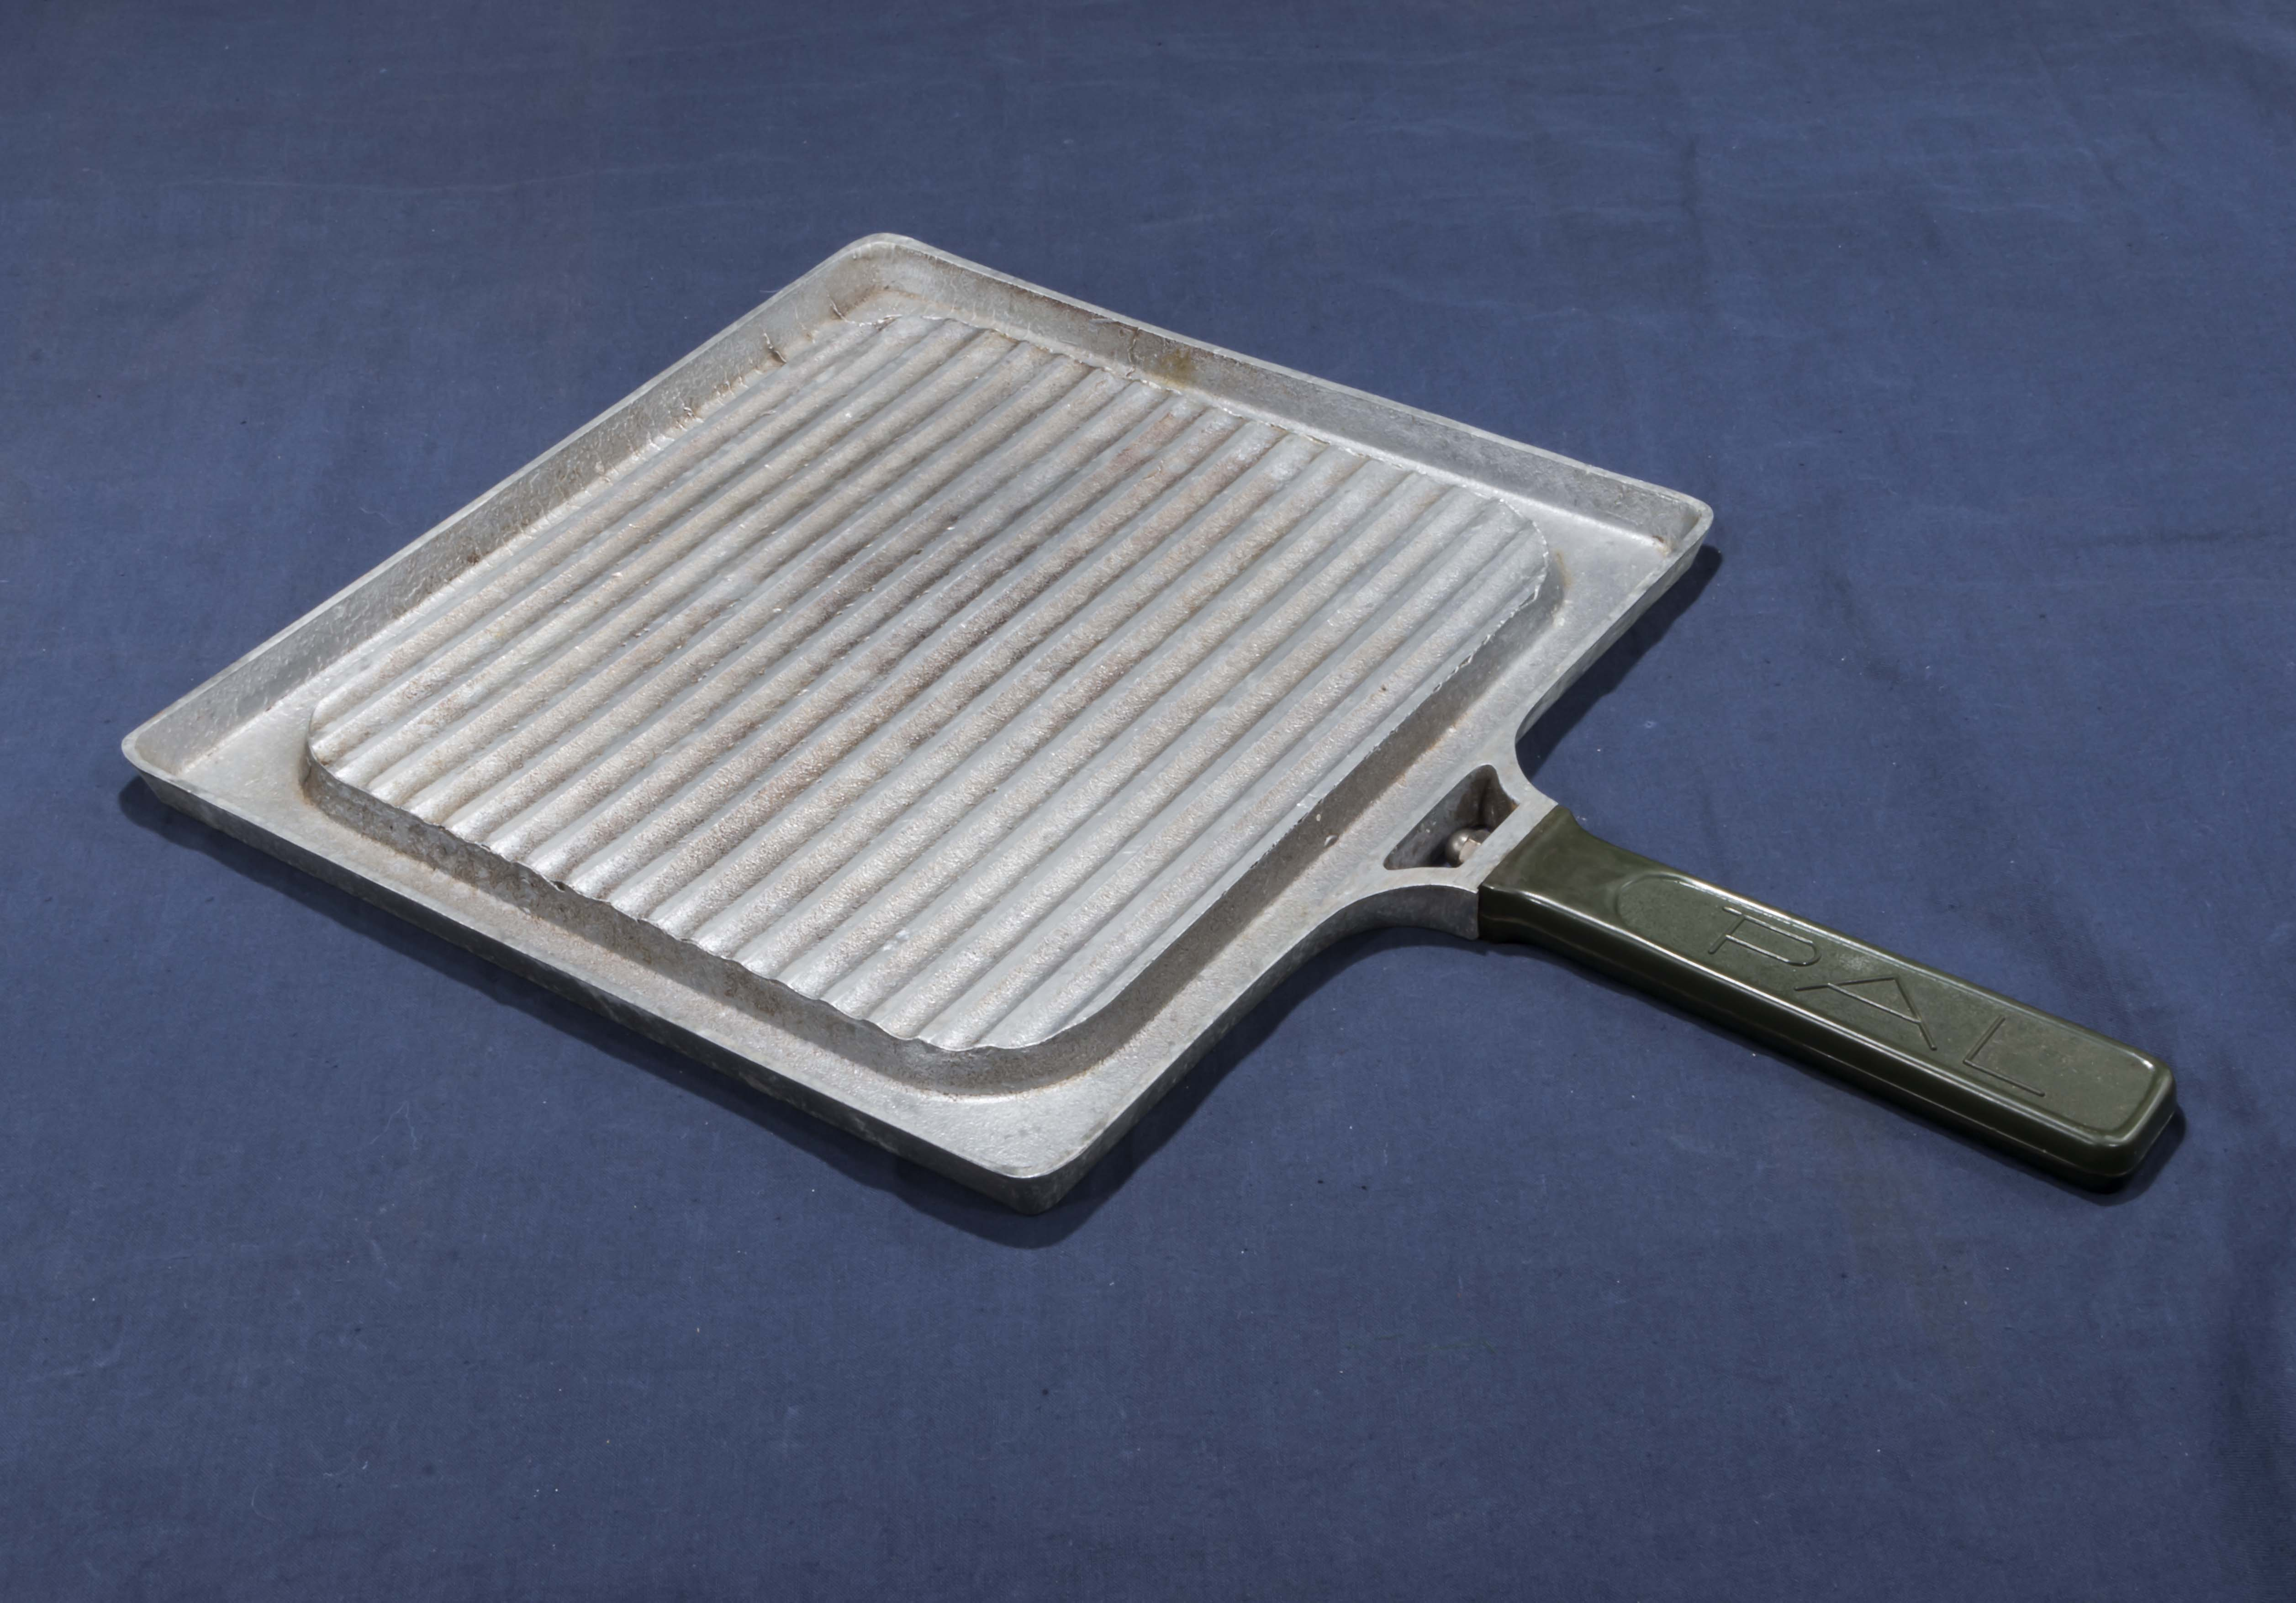 Lot 8 - Vintage griddle with folding handle and a 1940's combination griddle/grill